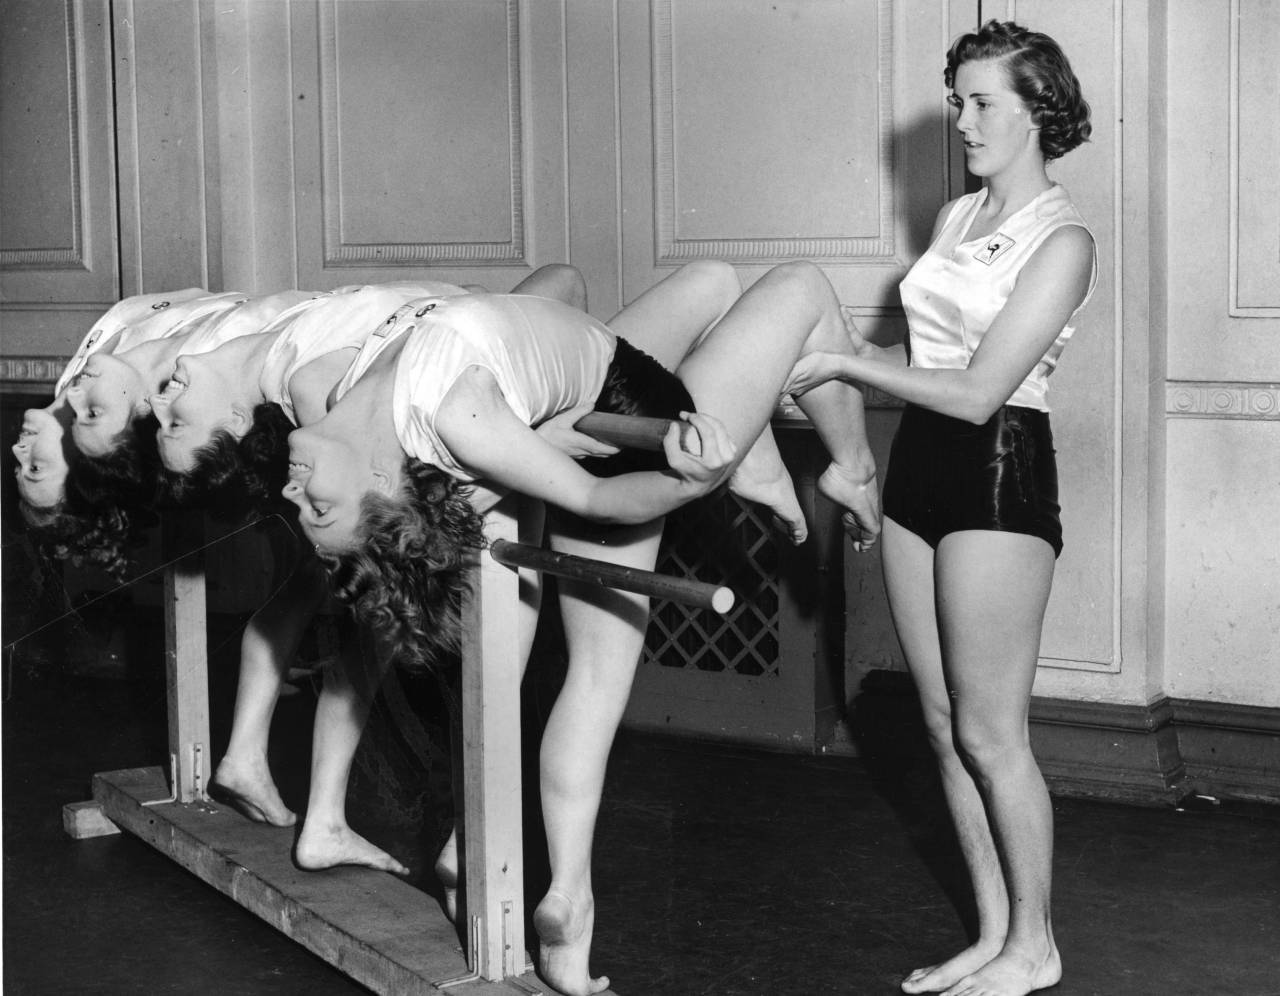 28th August 1940: Four teachers of the Womens' League of Health and Beauty stretch over an exercise bar. They are being instructed by Lady Prunella Hamilton at a summer refresher course in London. (Photo by William Vanderson/Fox Photos/Getty Images)